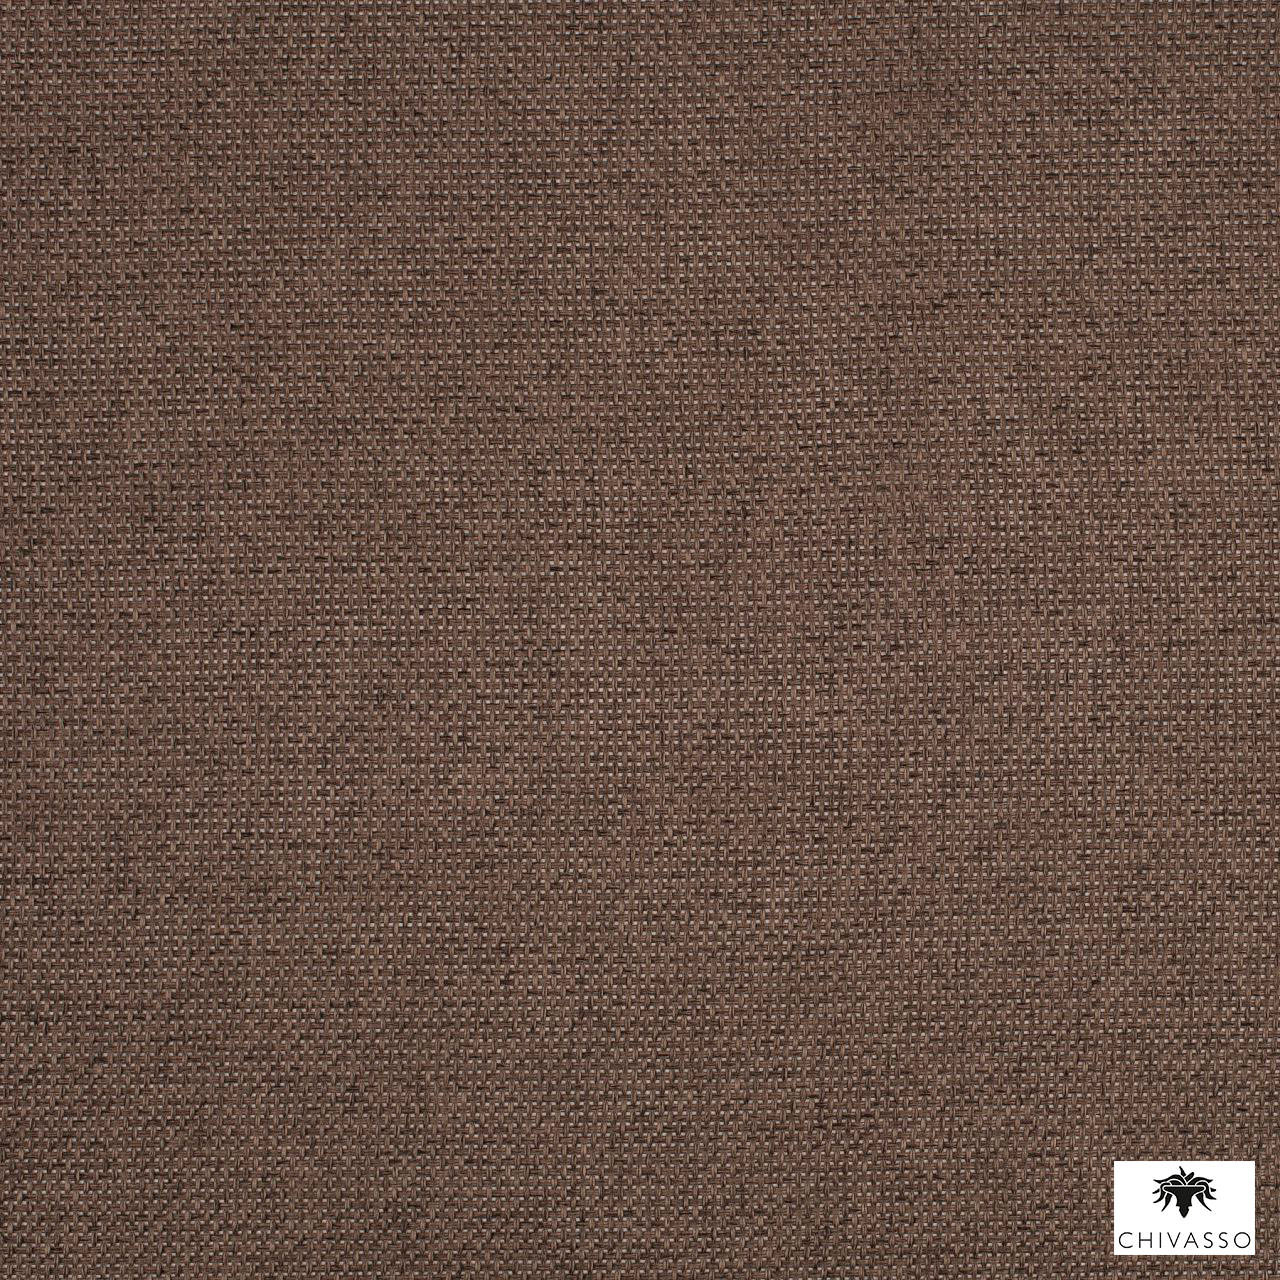 Chivasso - Twinkle - Ch2740-022  | Curtain Fabric - Brown, Plain, Synthetic, Domestic Use, Railroaded, Wide Width